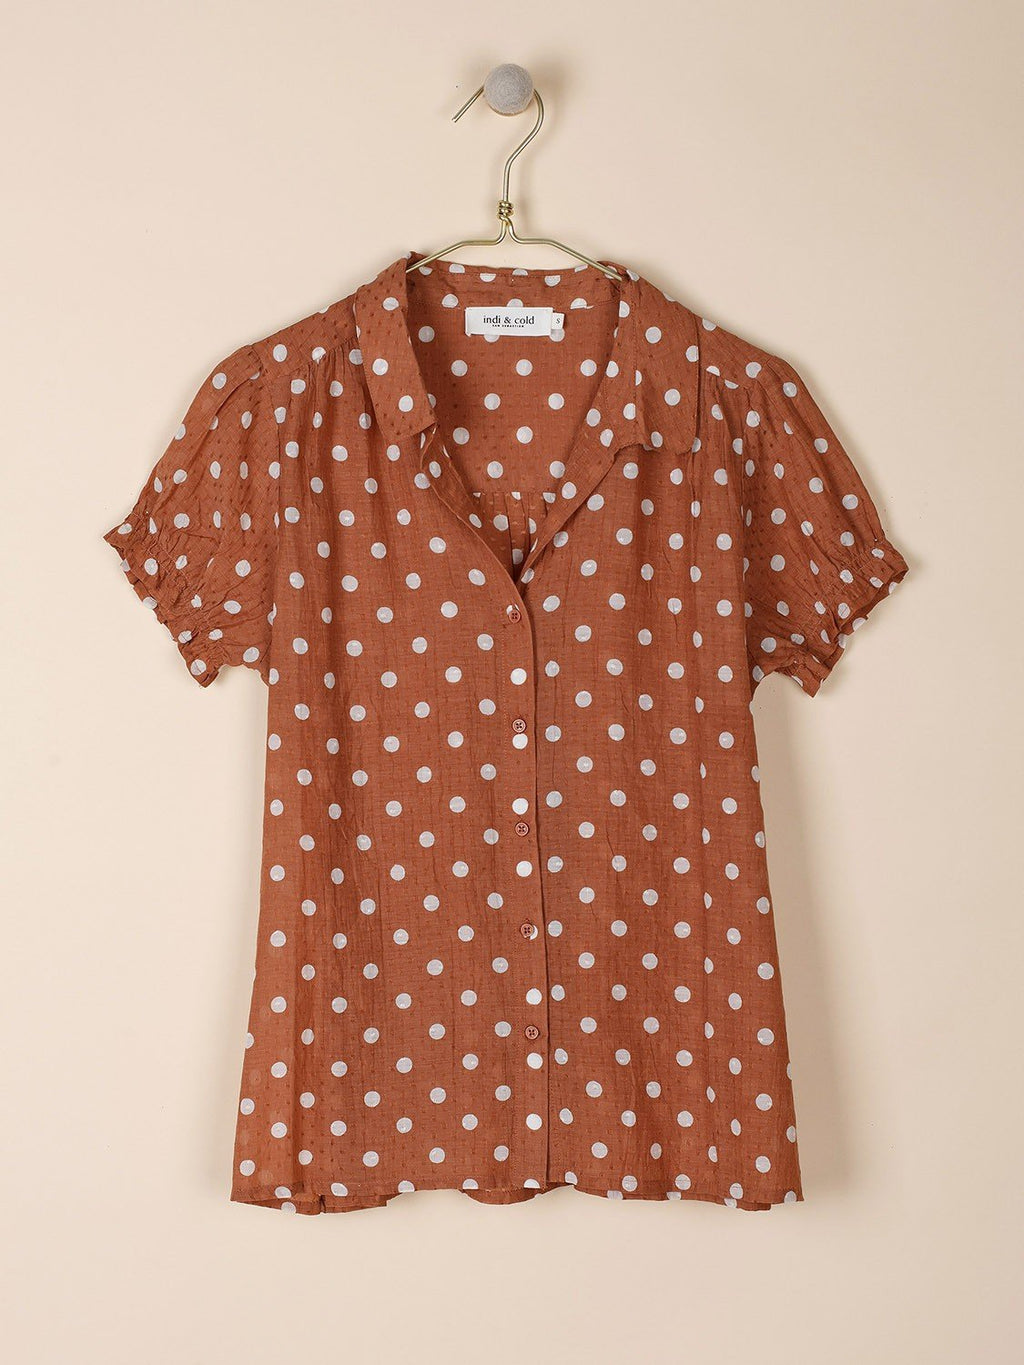 Indi & Cold dark tan polka dot shirt with ruffle sleeves